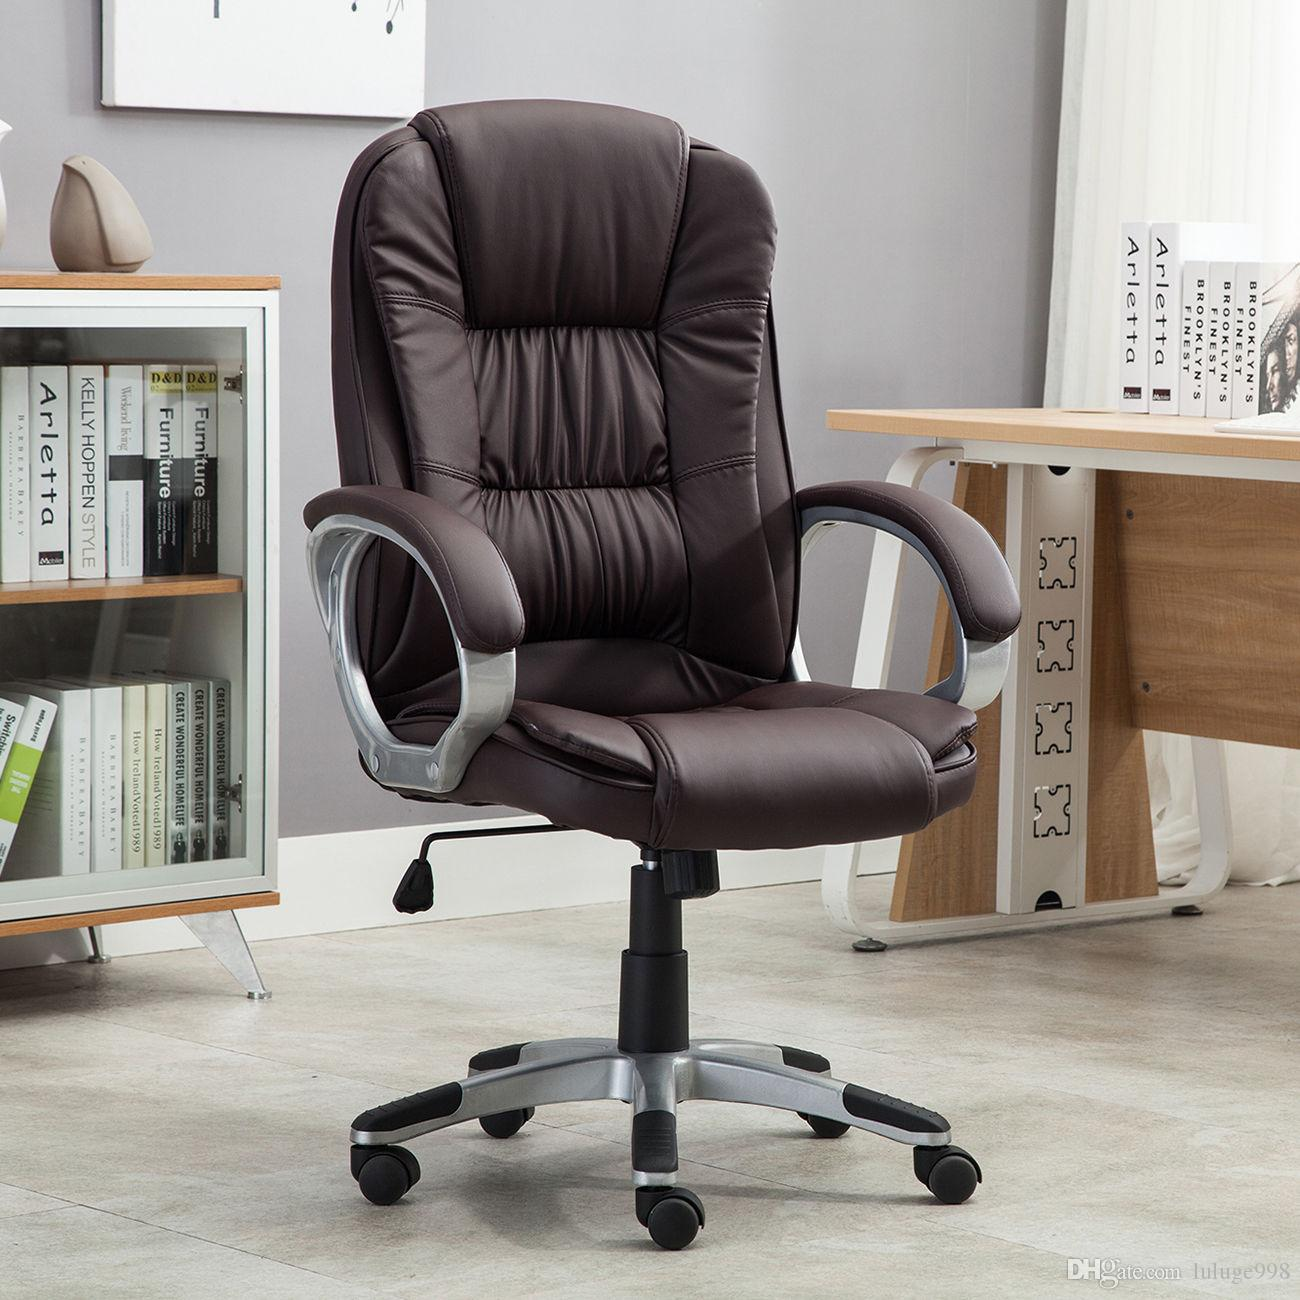 pu leather office chair taupe dining chairs canada high brown executive desk task computer boss luxury new online with 68 58 piece on luluge998 s store dhgate com